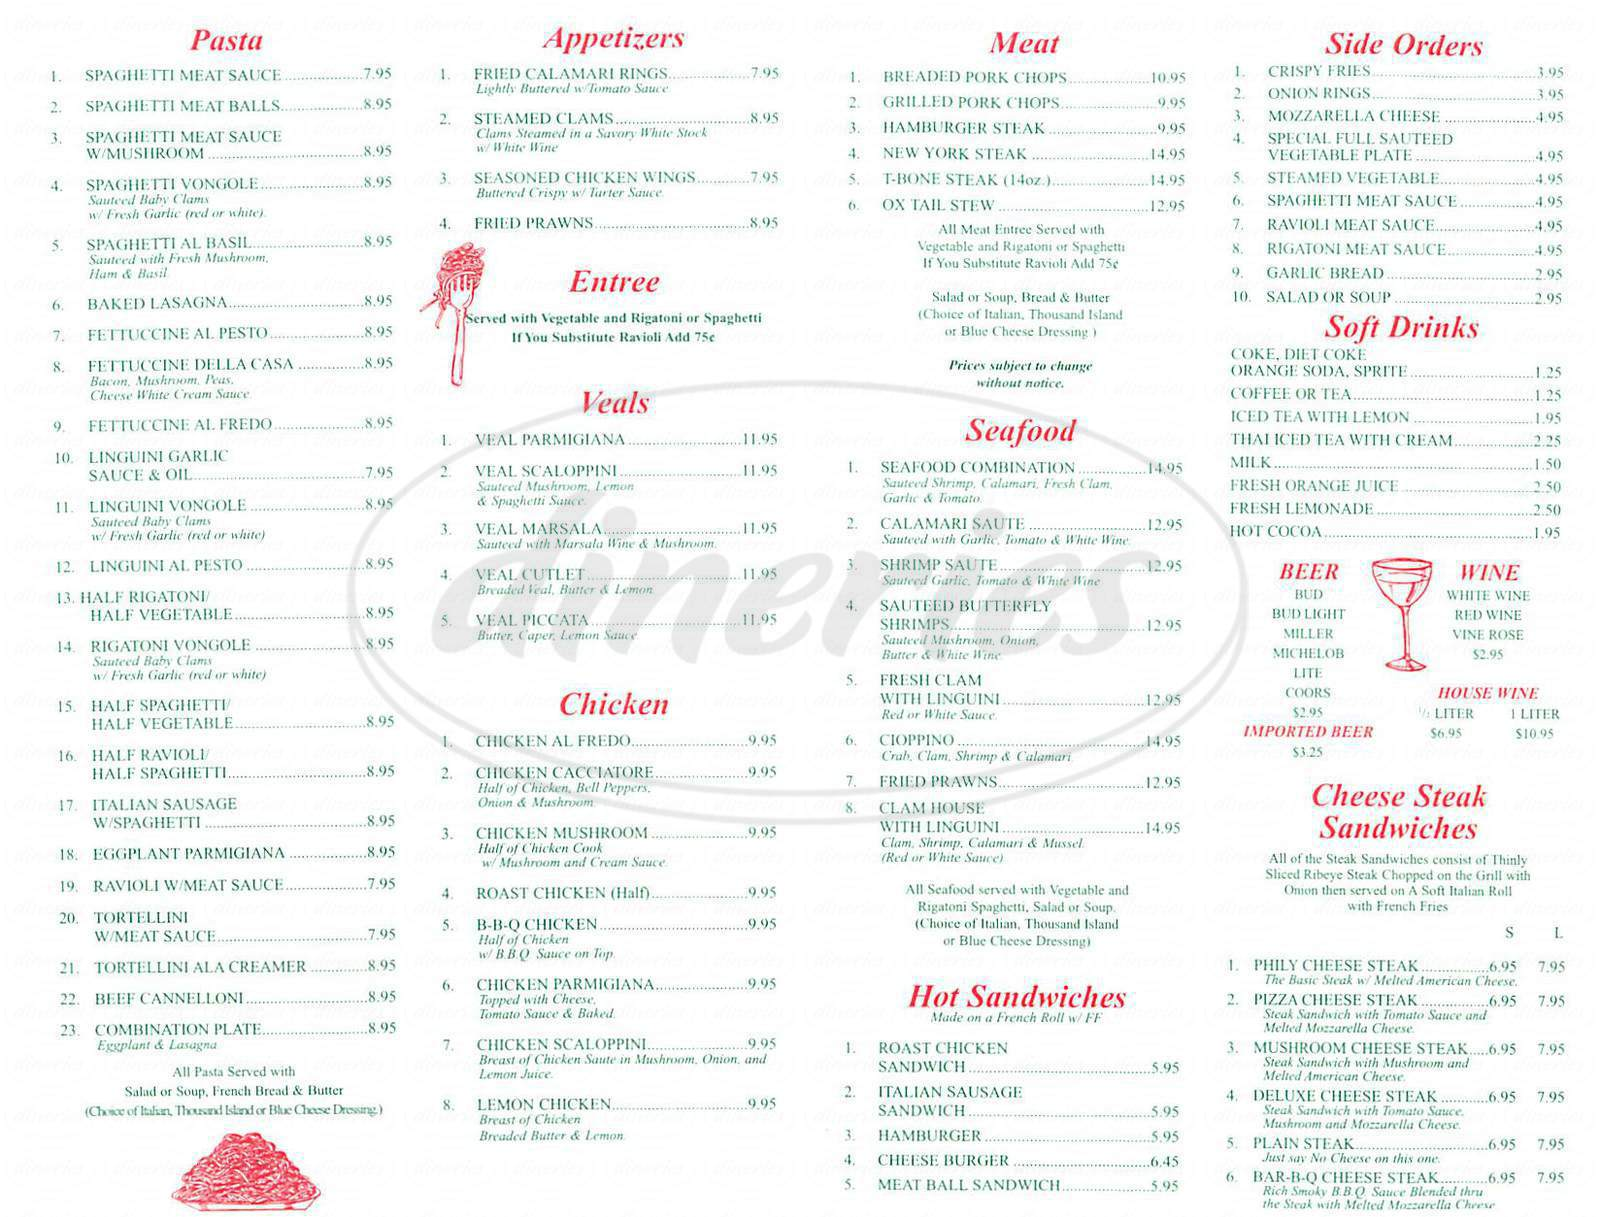 menu for Little Henry's